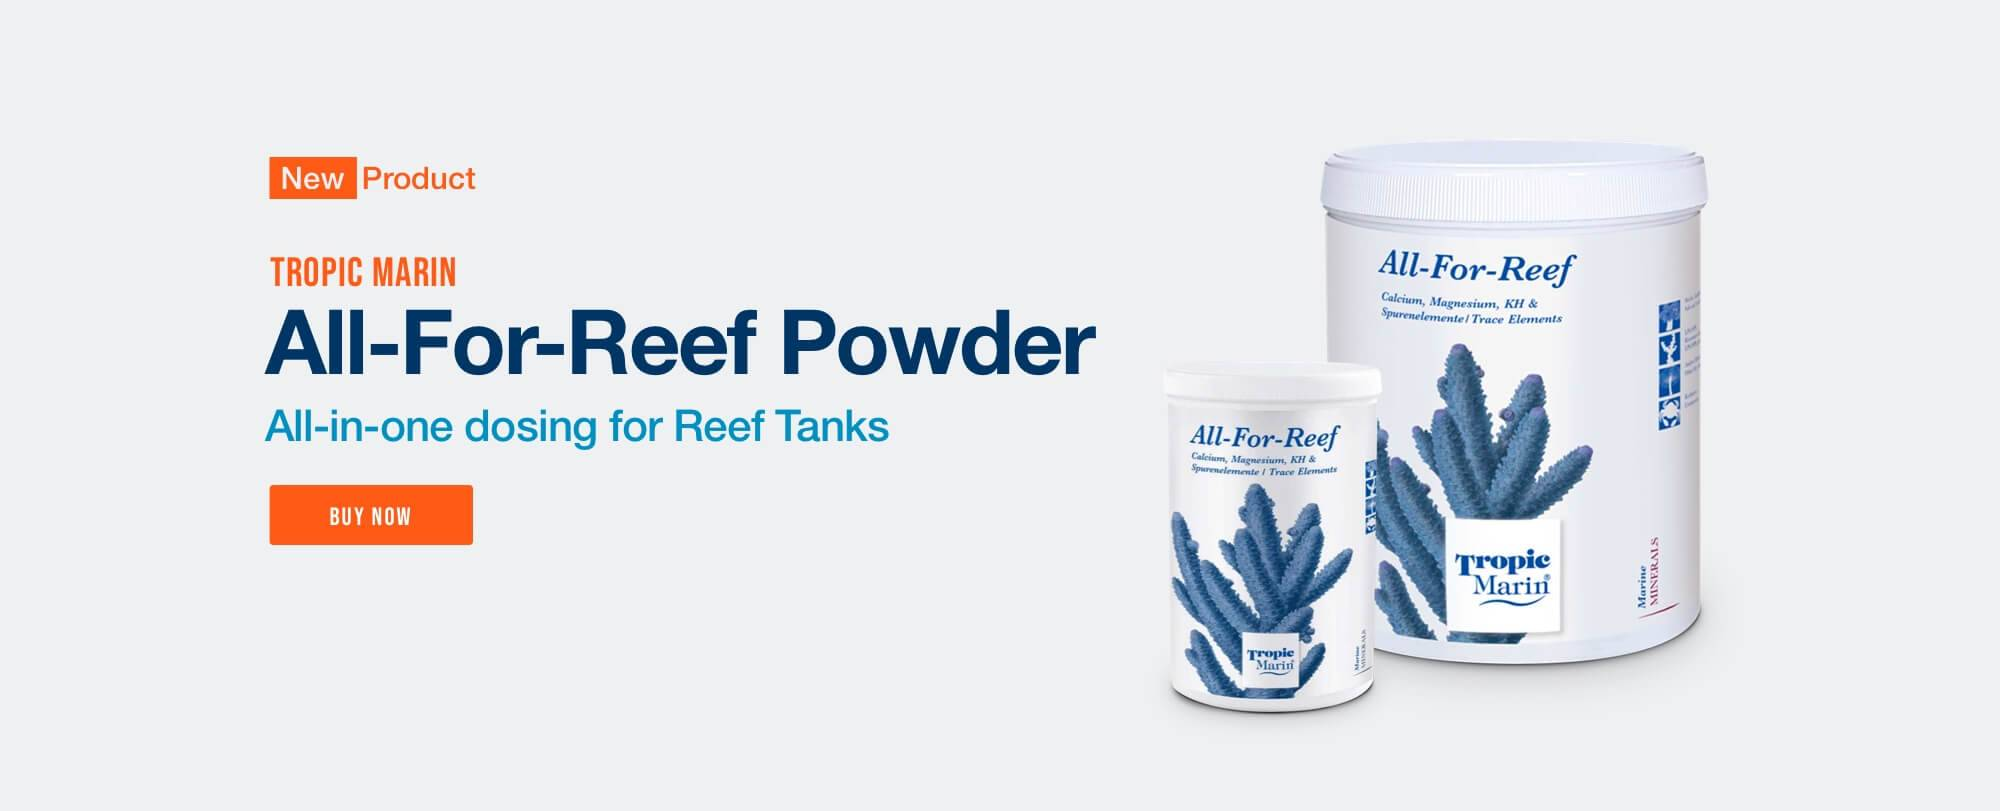 New Tropic Marin All-For-Reef Powder - Now Available at Bulk Reef Supply